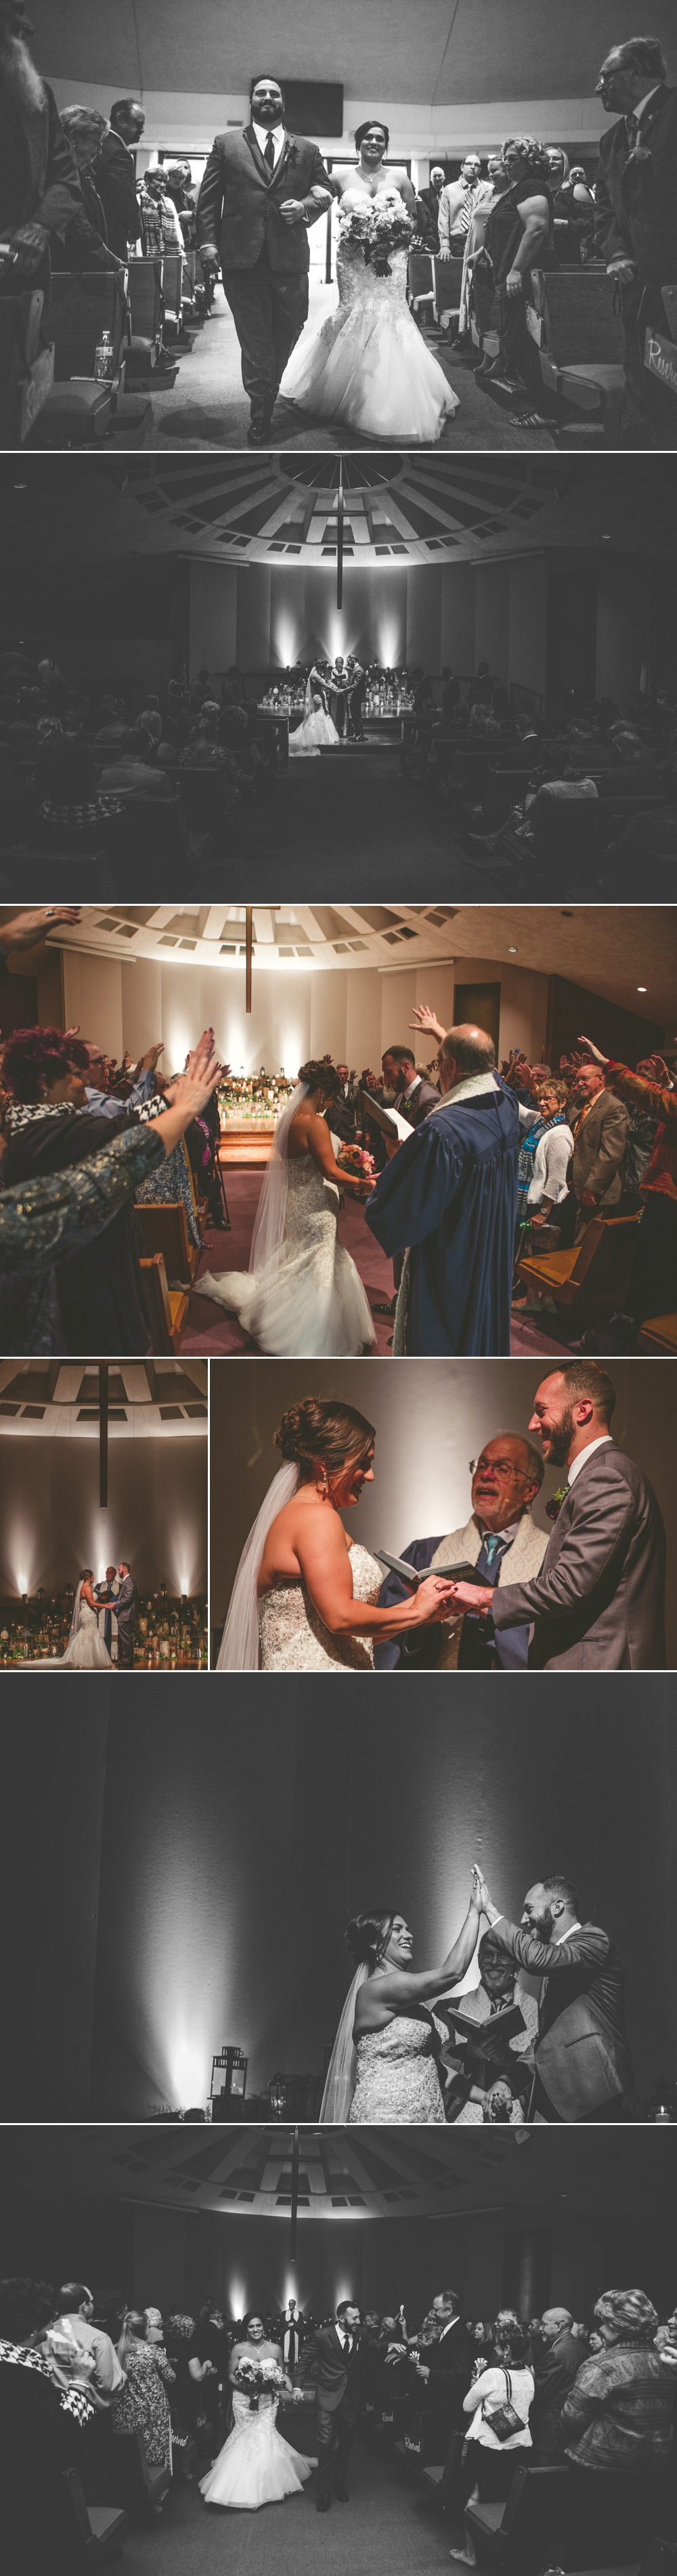 jason_domingues_photography_best_kansas_city_photographer_kc_weddings_aspen_room_stanley_0002.JPG